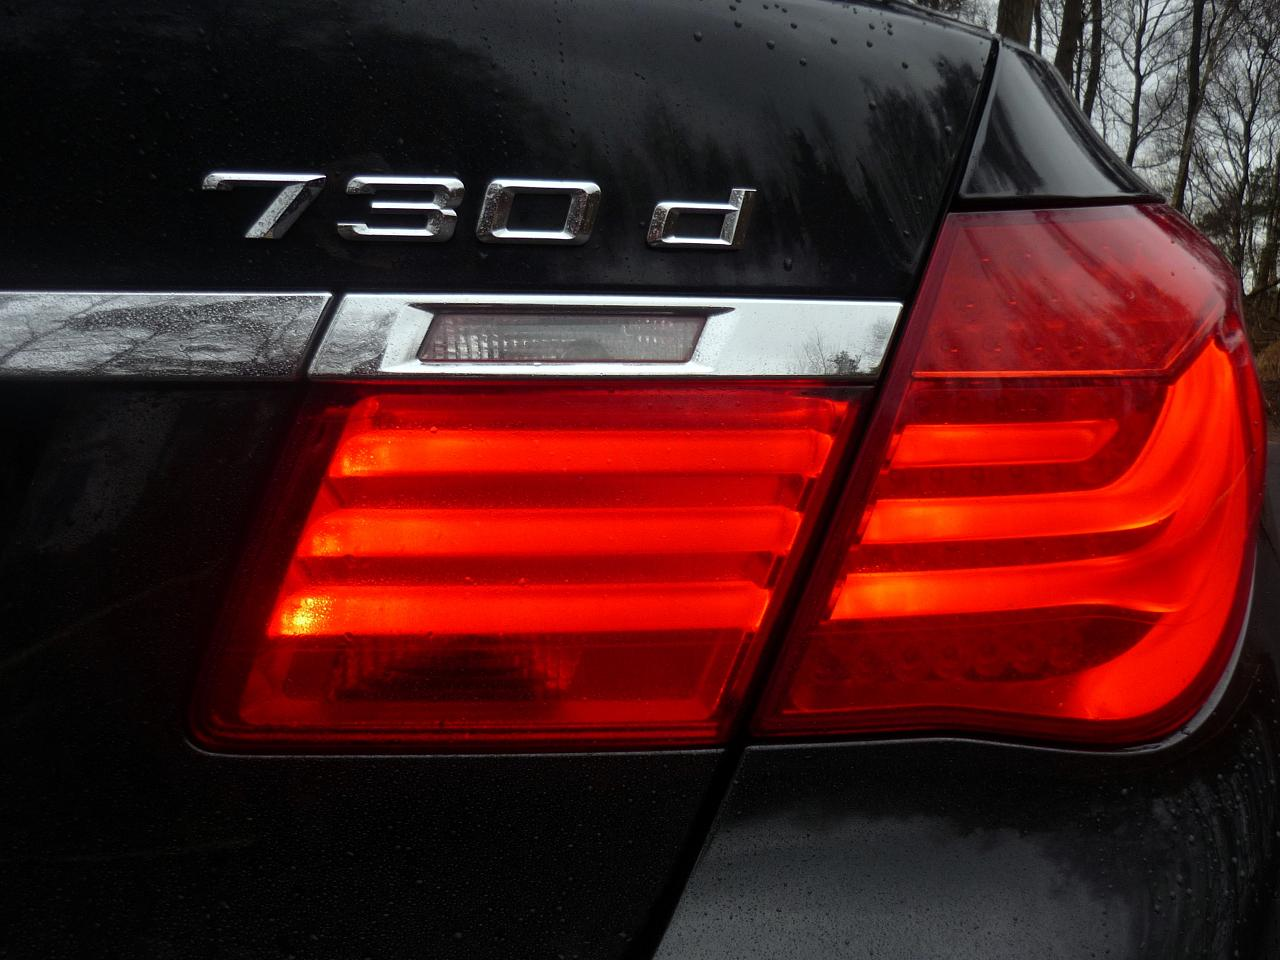 Car review: BMW 730d F01-3.bp.blogspot.com